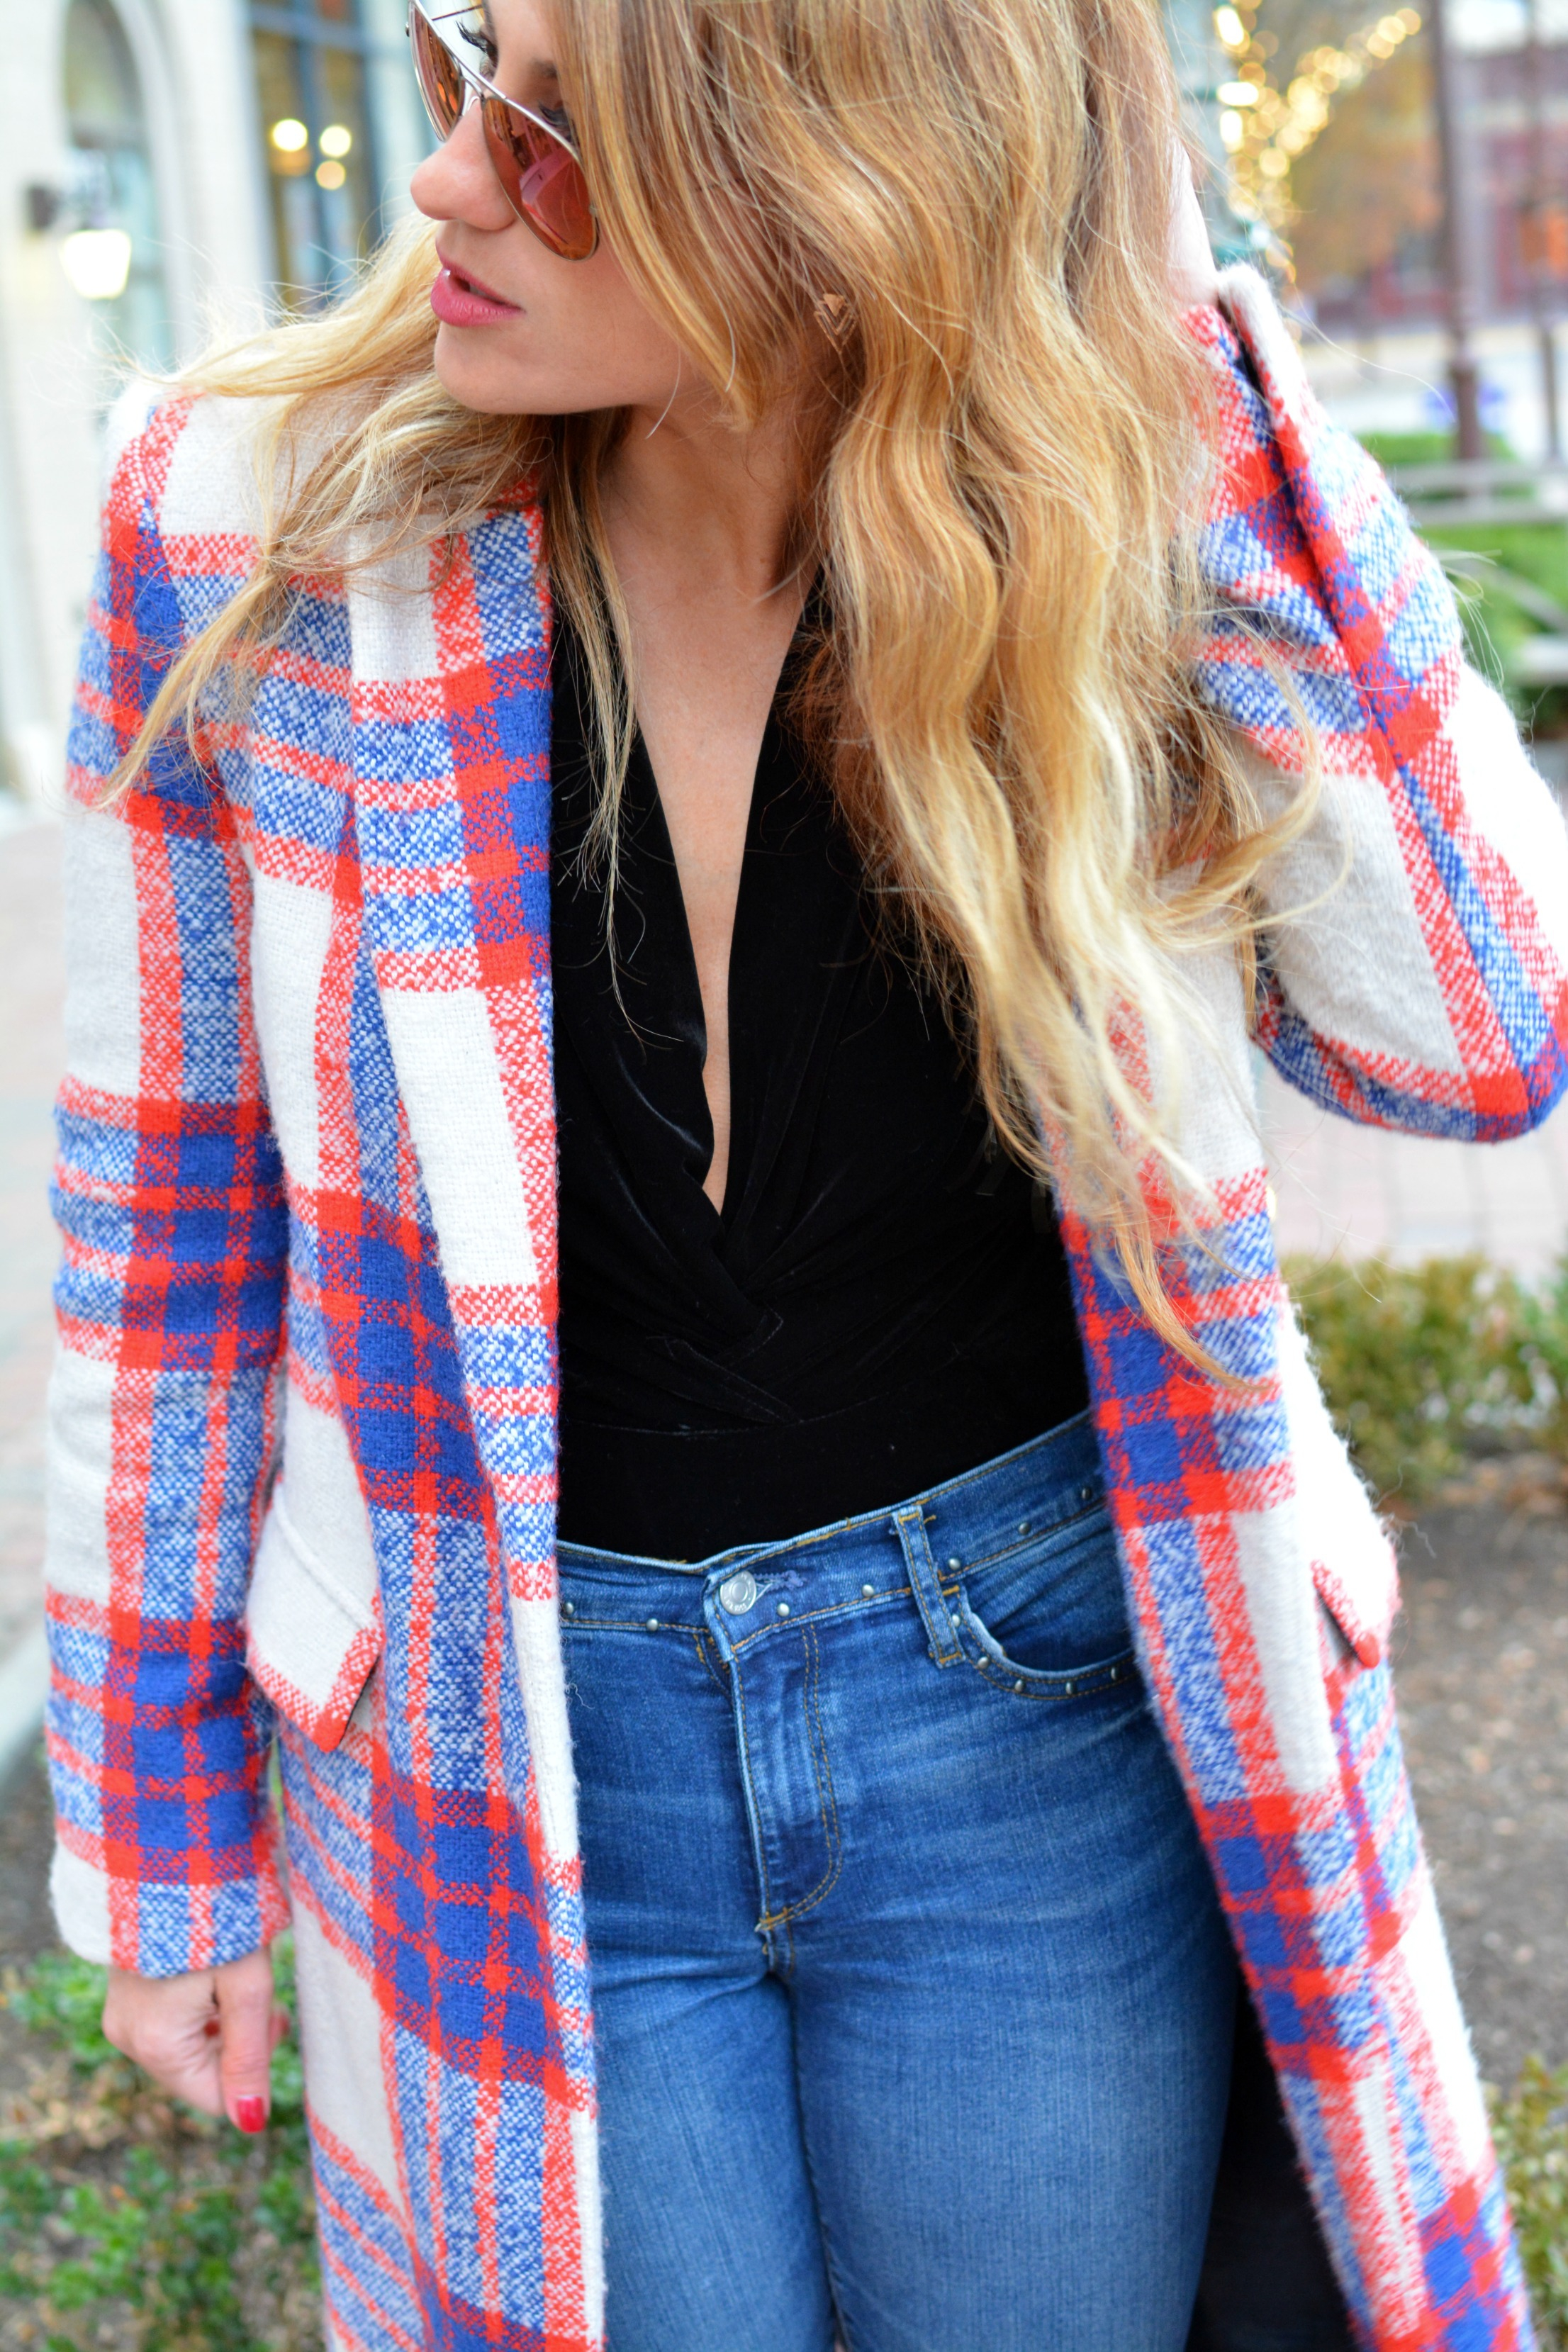 Ashley from LSR in a plaid statement coat and velvet bodysuit